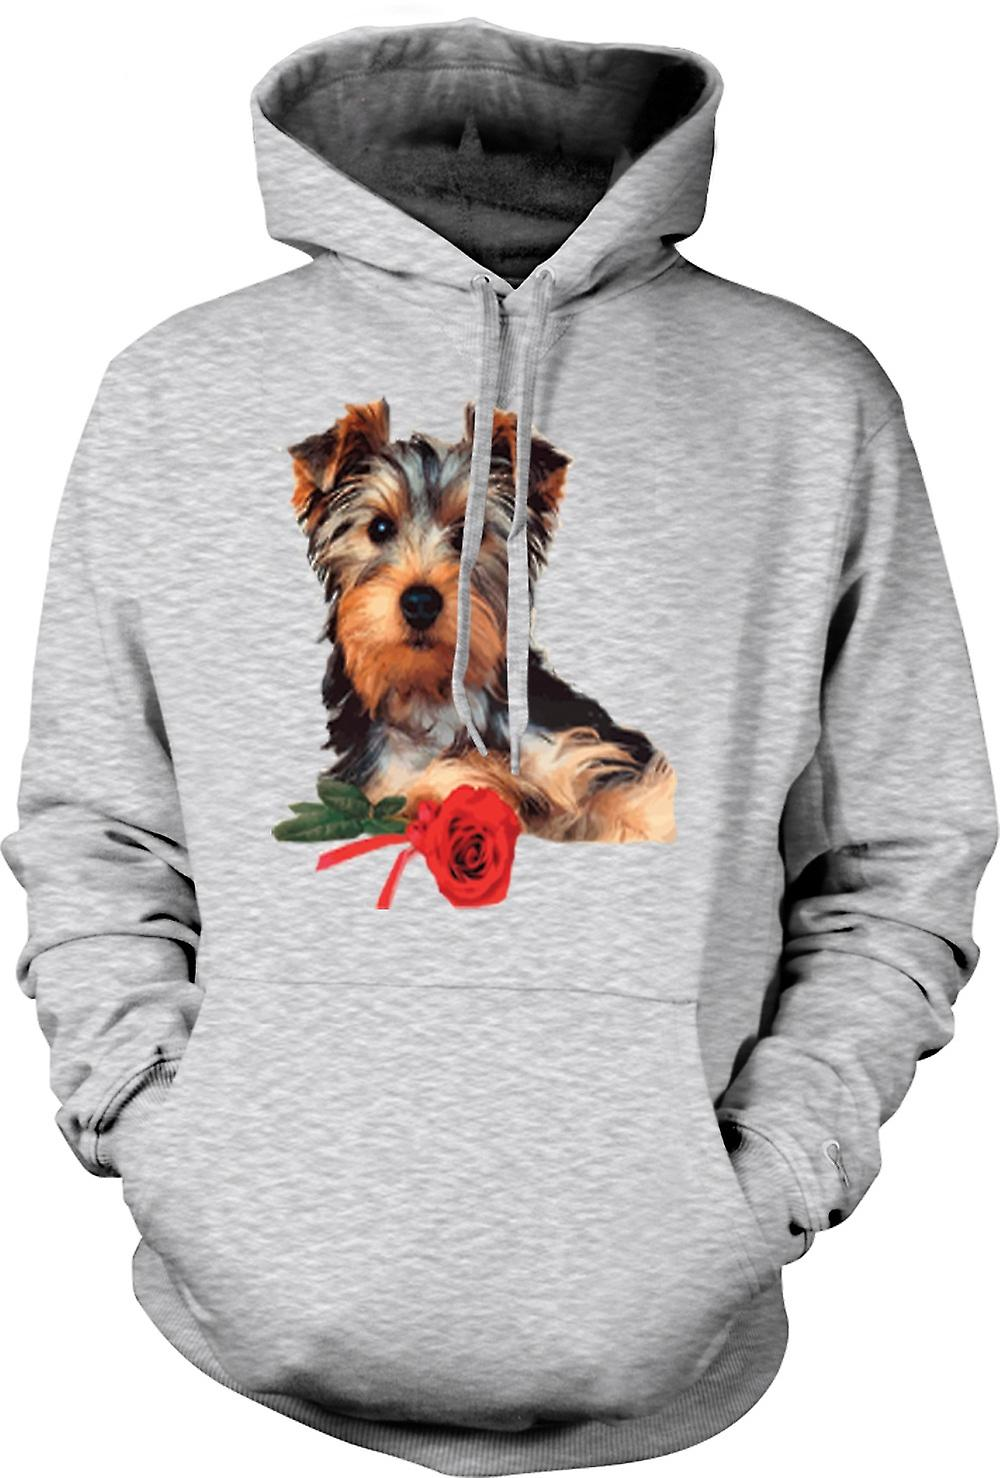 Mens Hoodie - Yorkshire Terrier Dog with Rose